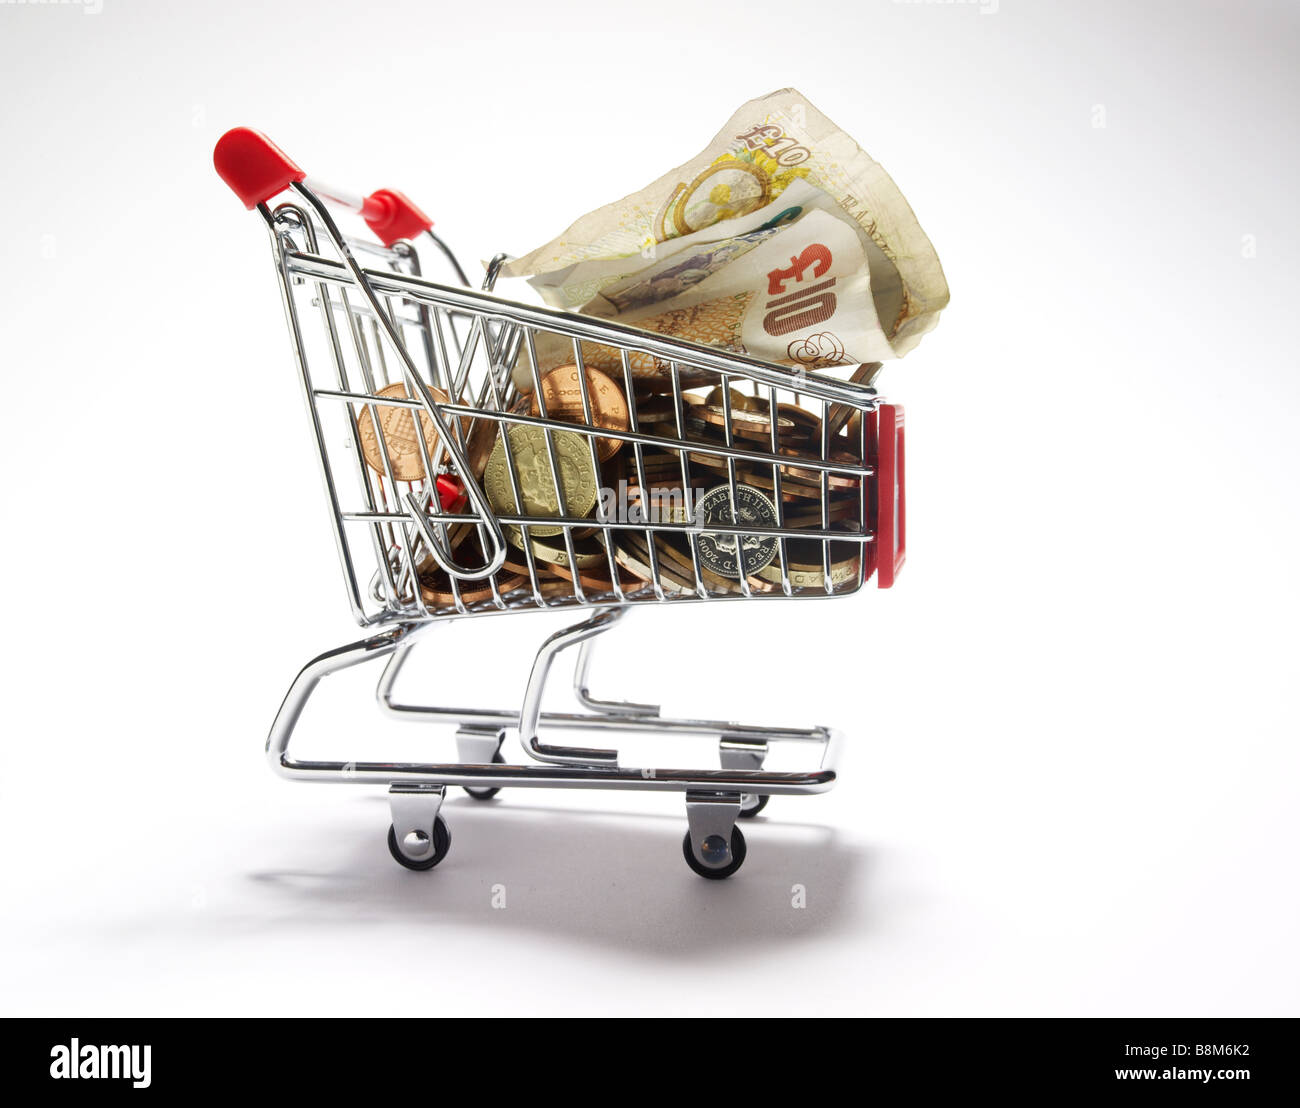 cash in a miniature shopping trolley - Stock Image